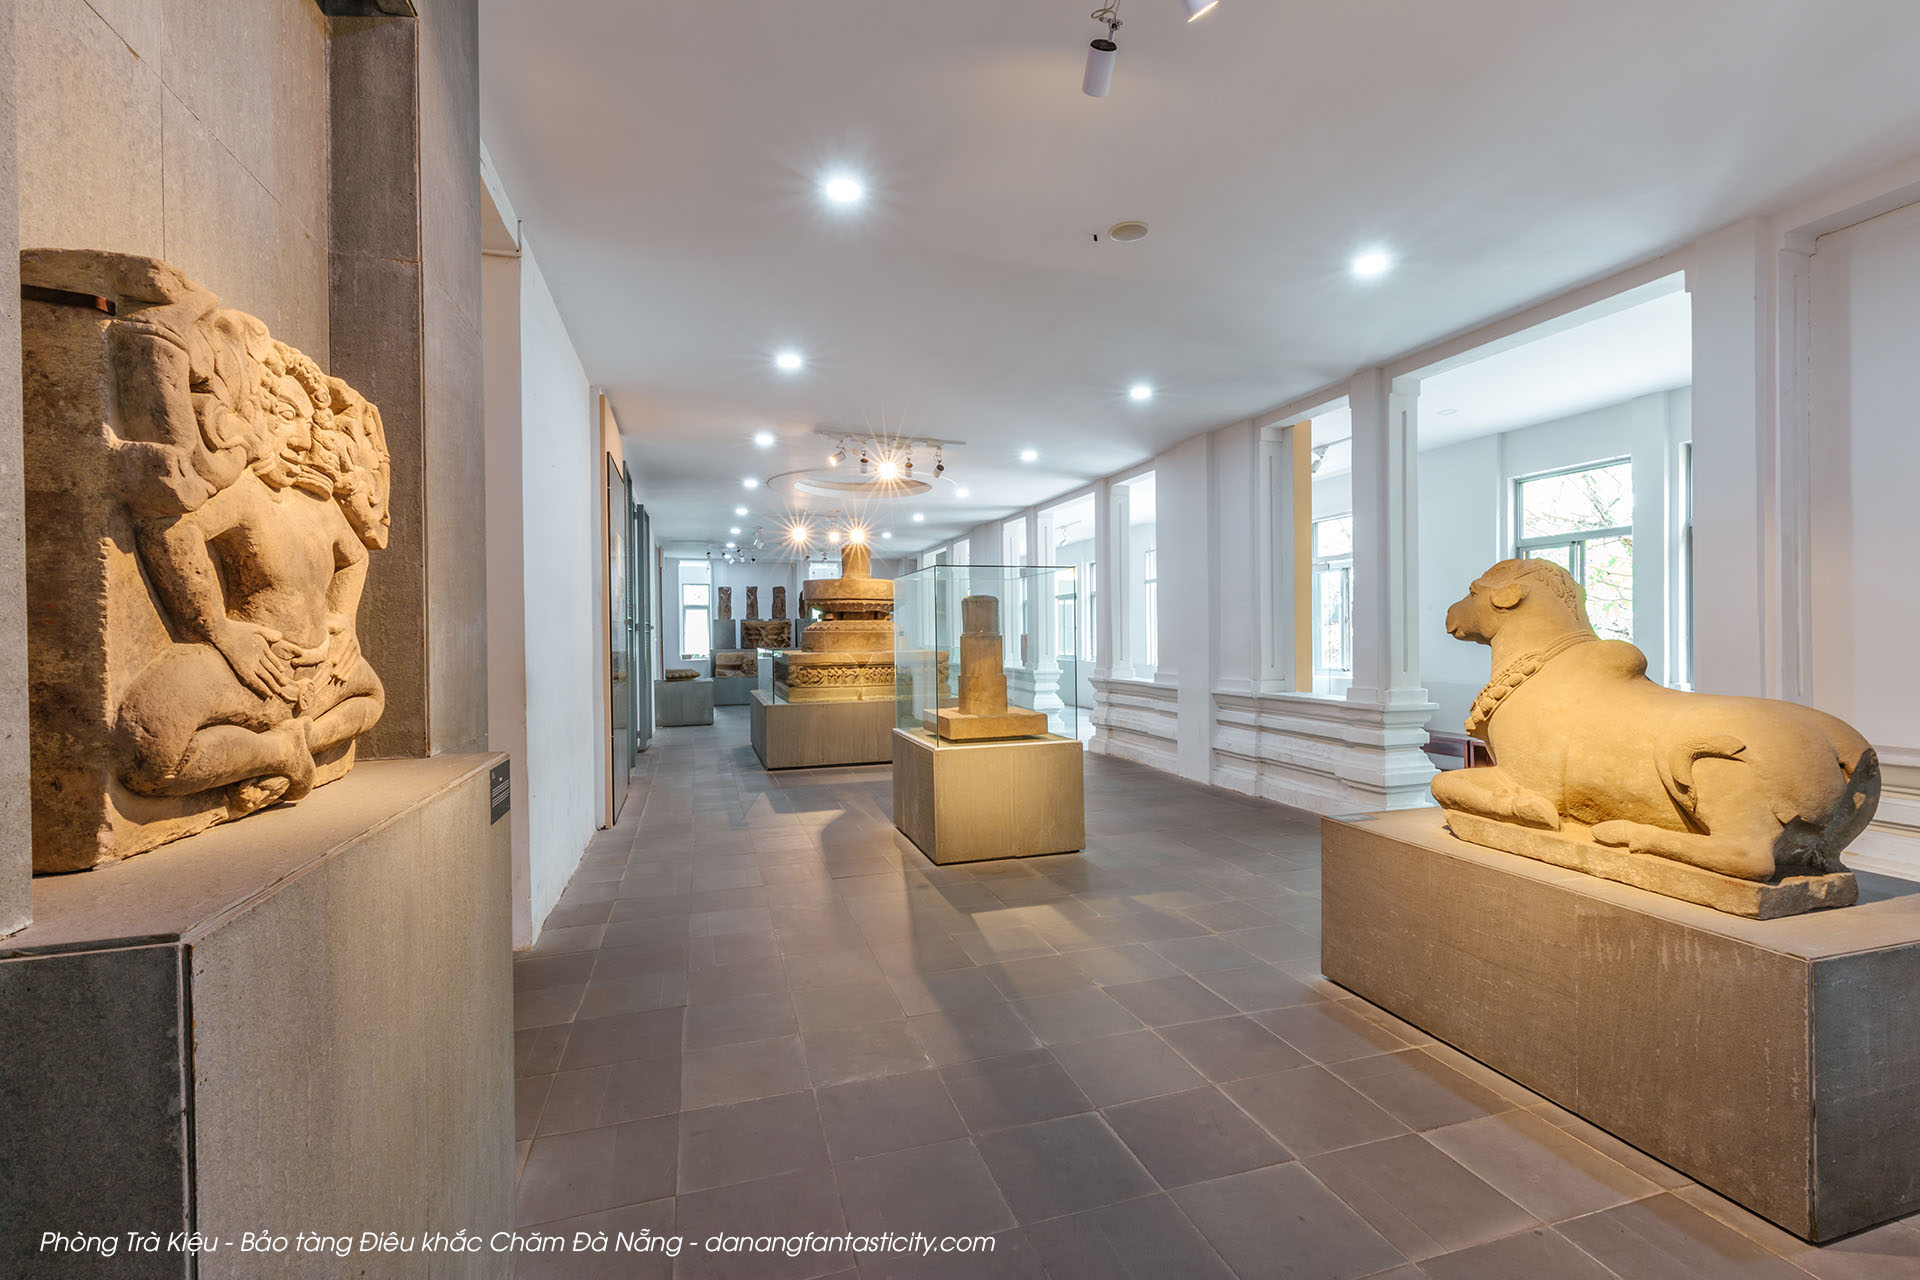 3d Scanning Trial Experience Explore The Timeless Values At Danang Musem Of Cham Sculpture 03